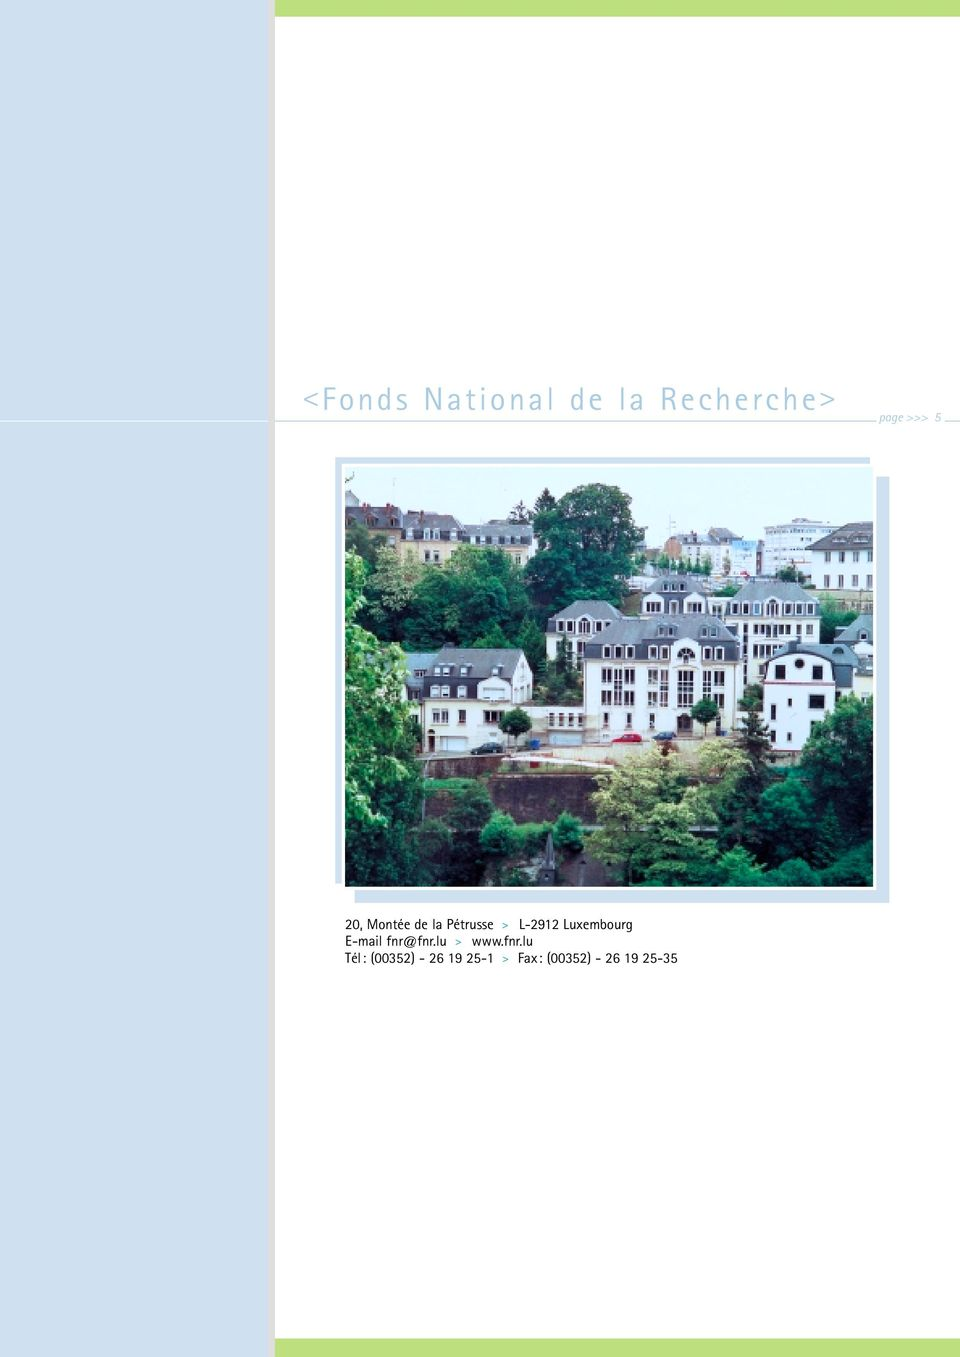 Luxembourg E-mail fnr@